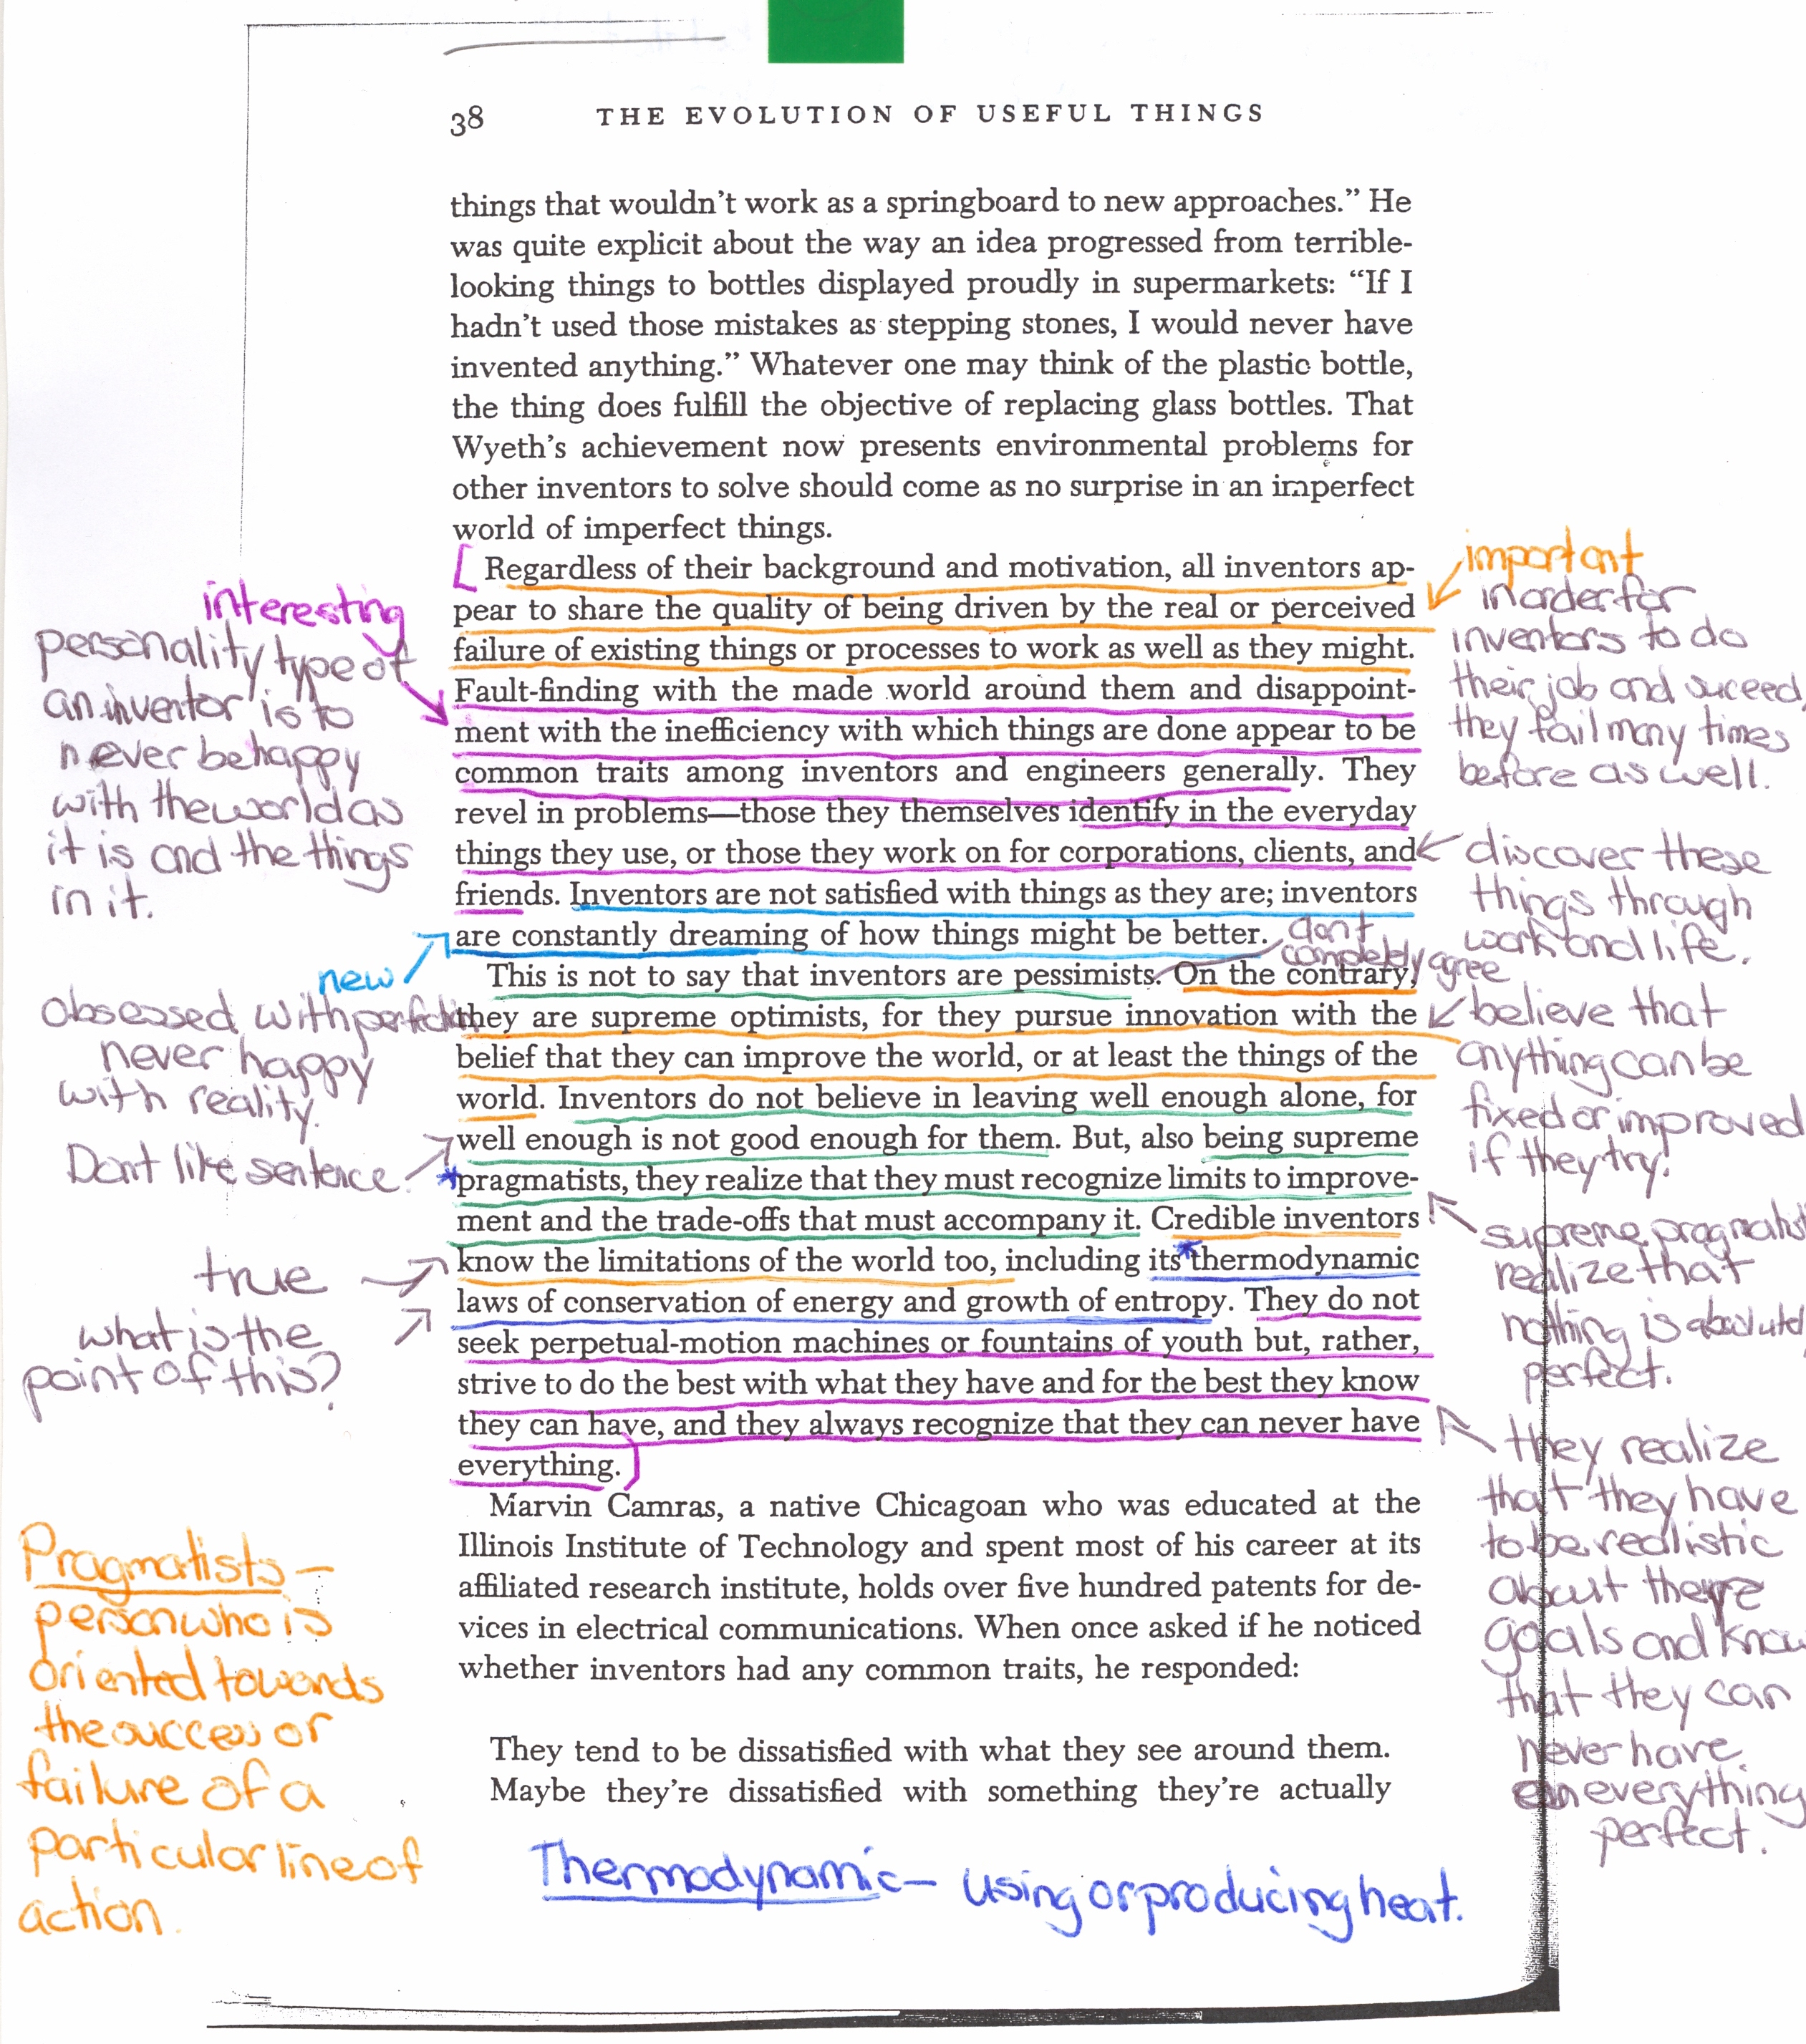 https://campuspress.yale.edu/ycbateachers/files/2014/12/Student-Annotations-Color-2.jpg